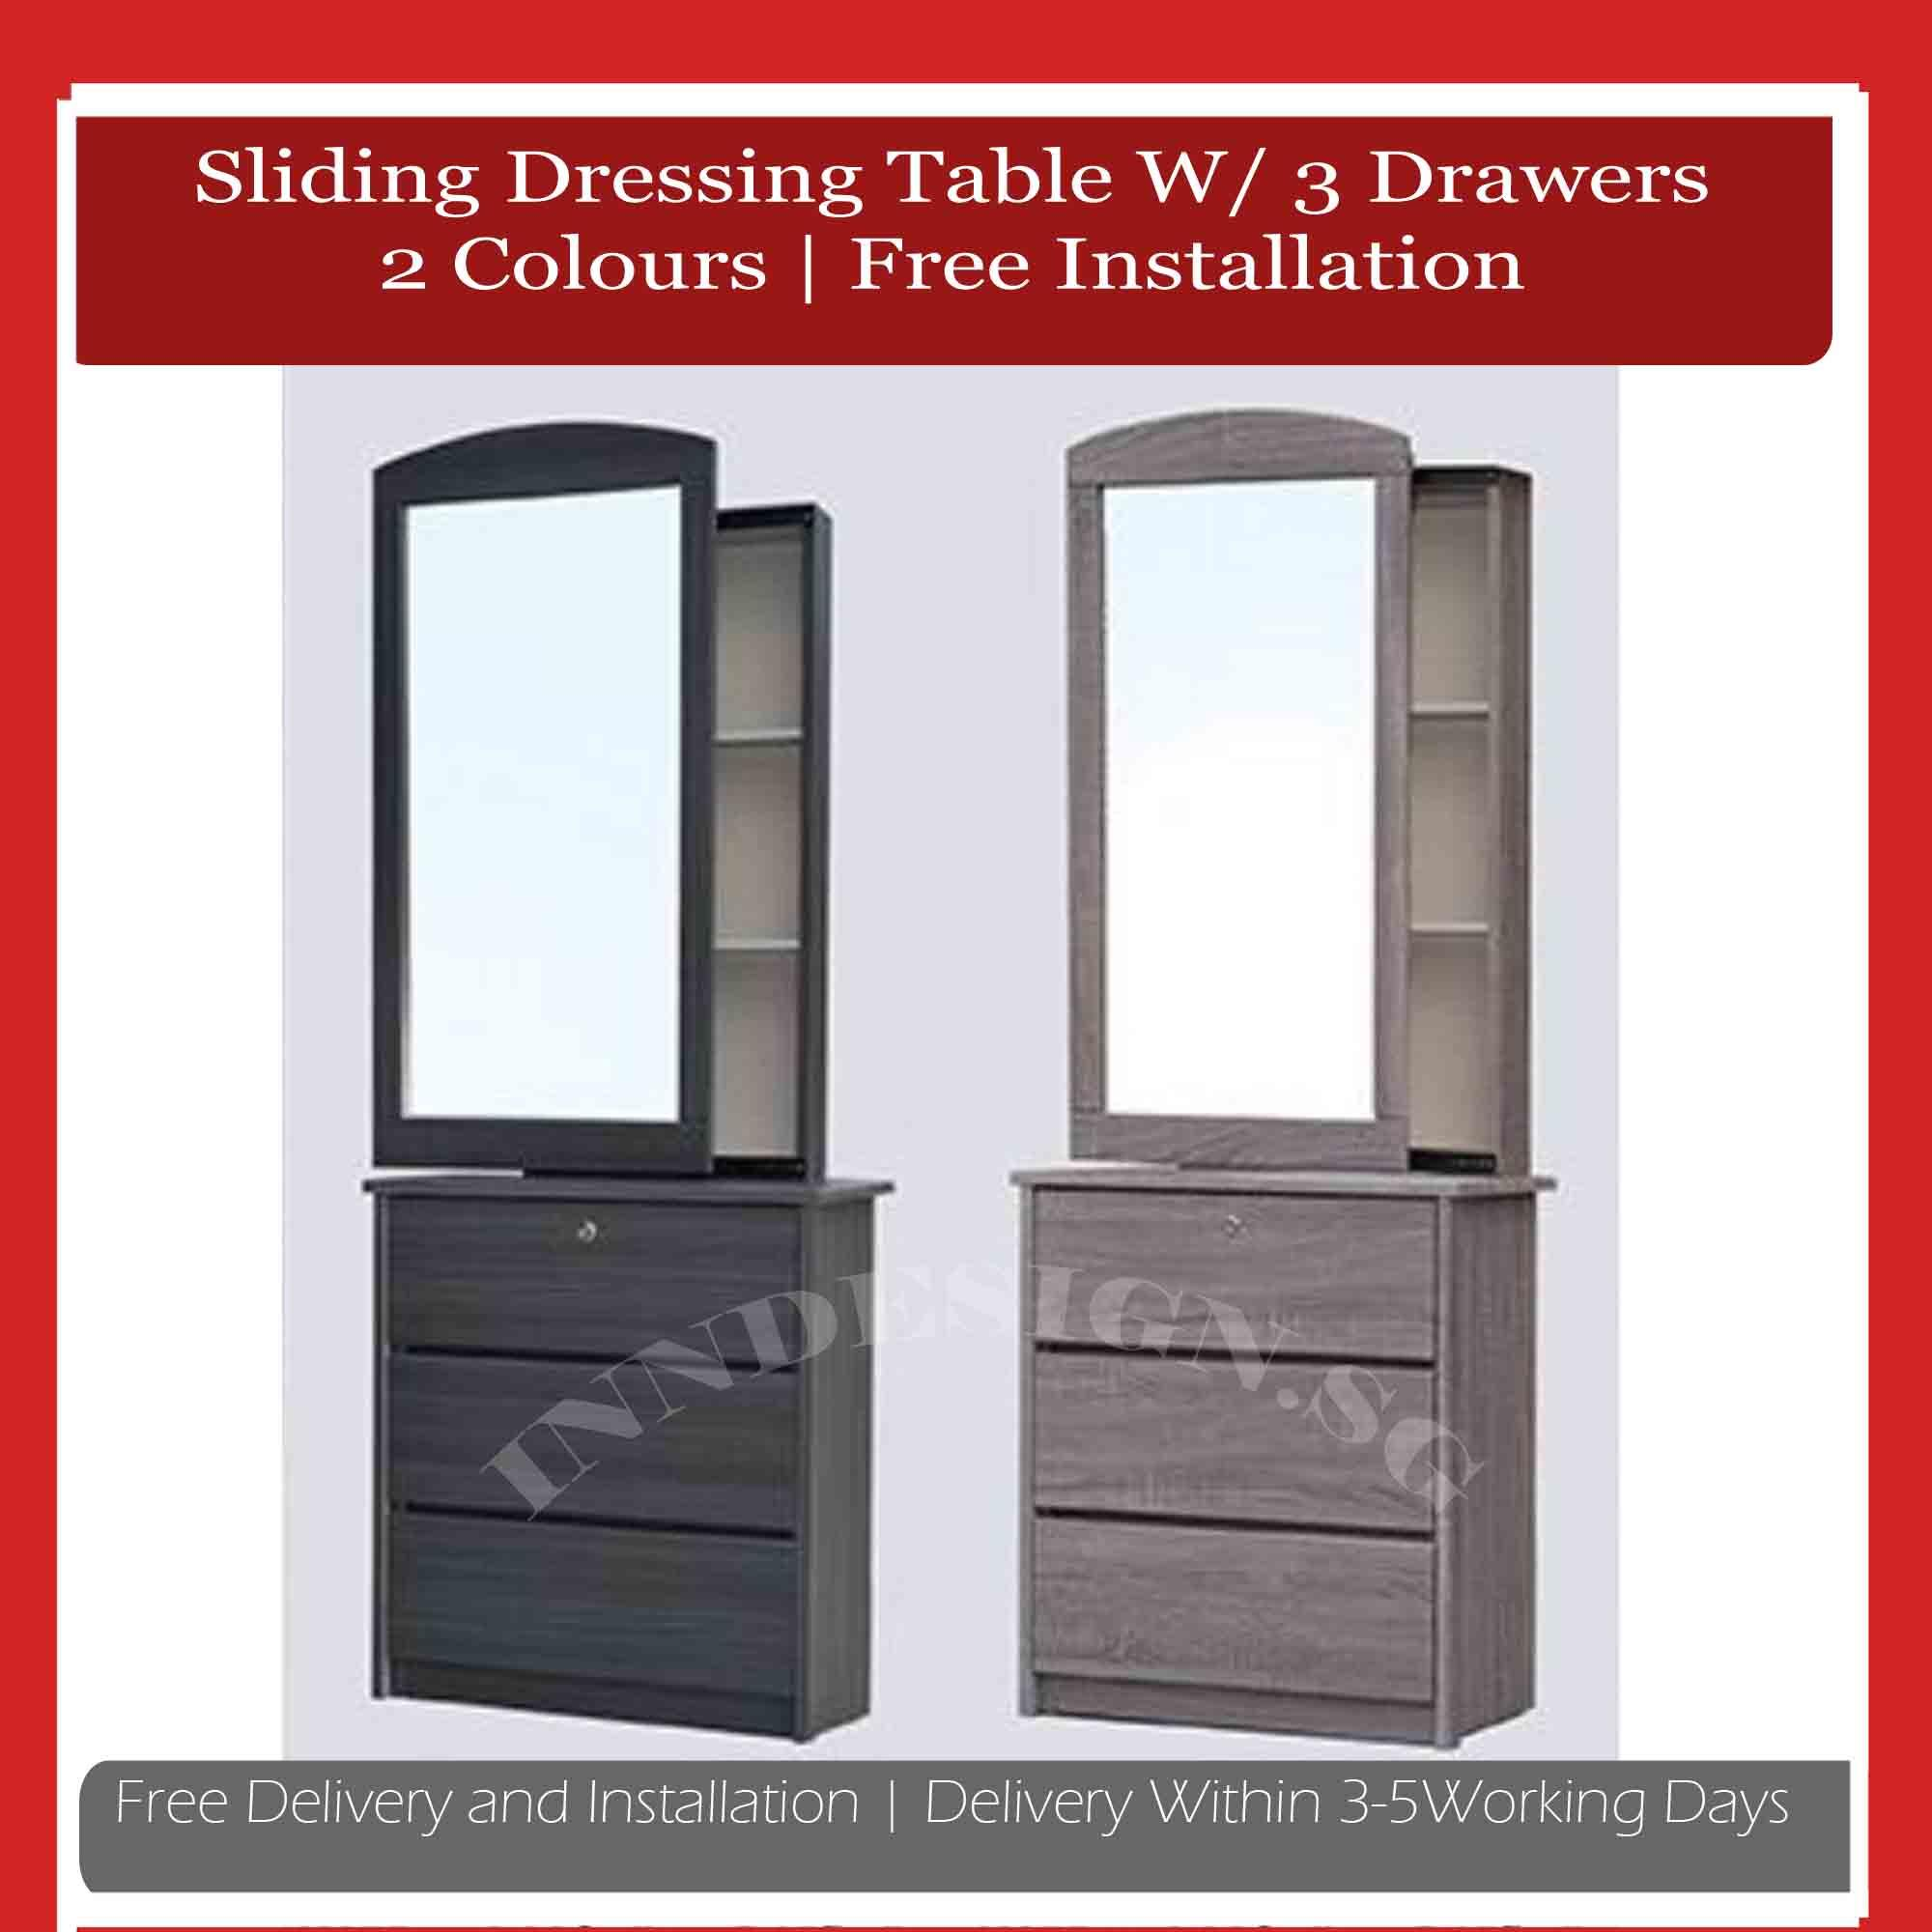 Kyen New Arrival Sliding Dressing Table With 3 Drawers (Free Delivery and Installation) (2 Colours)(Delivery Within 1 Working Day)